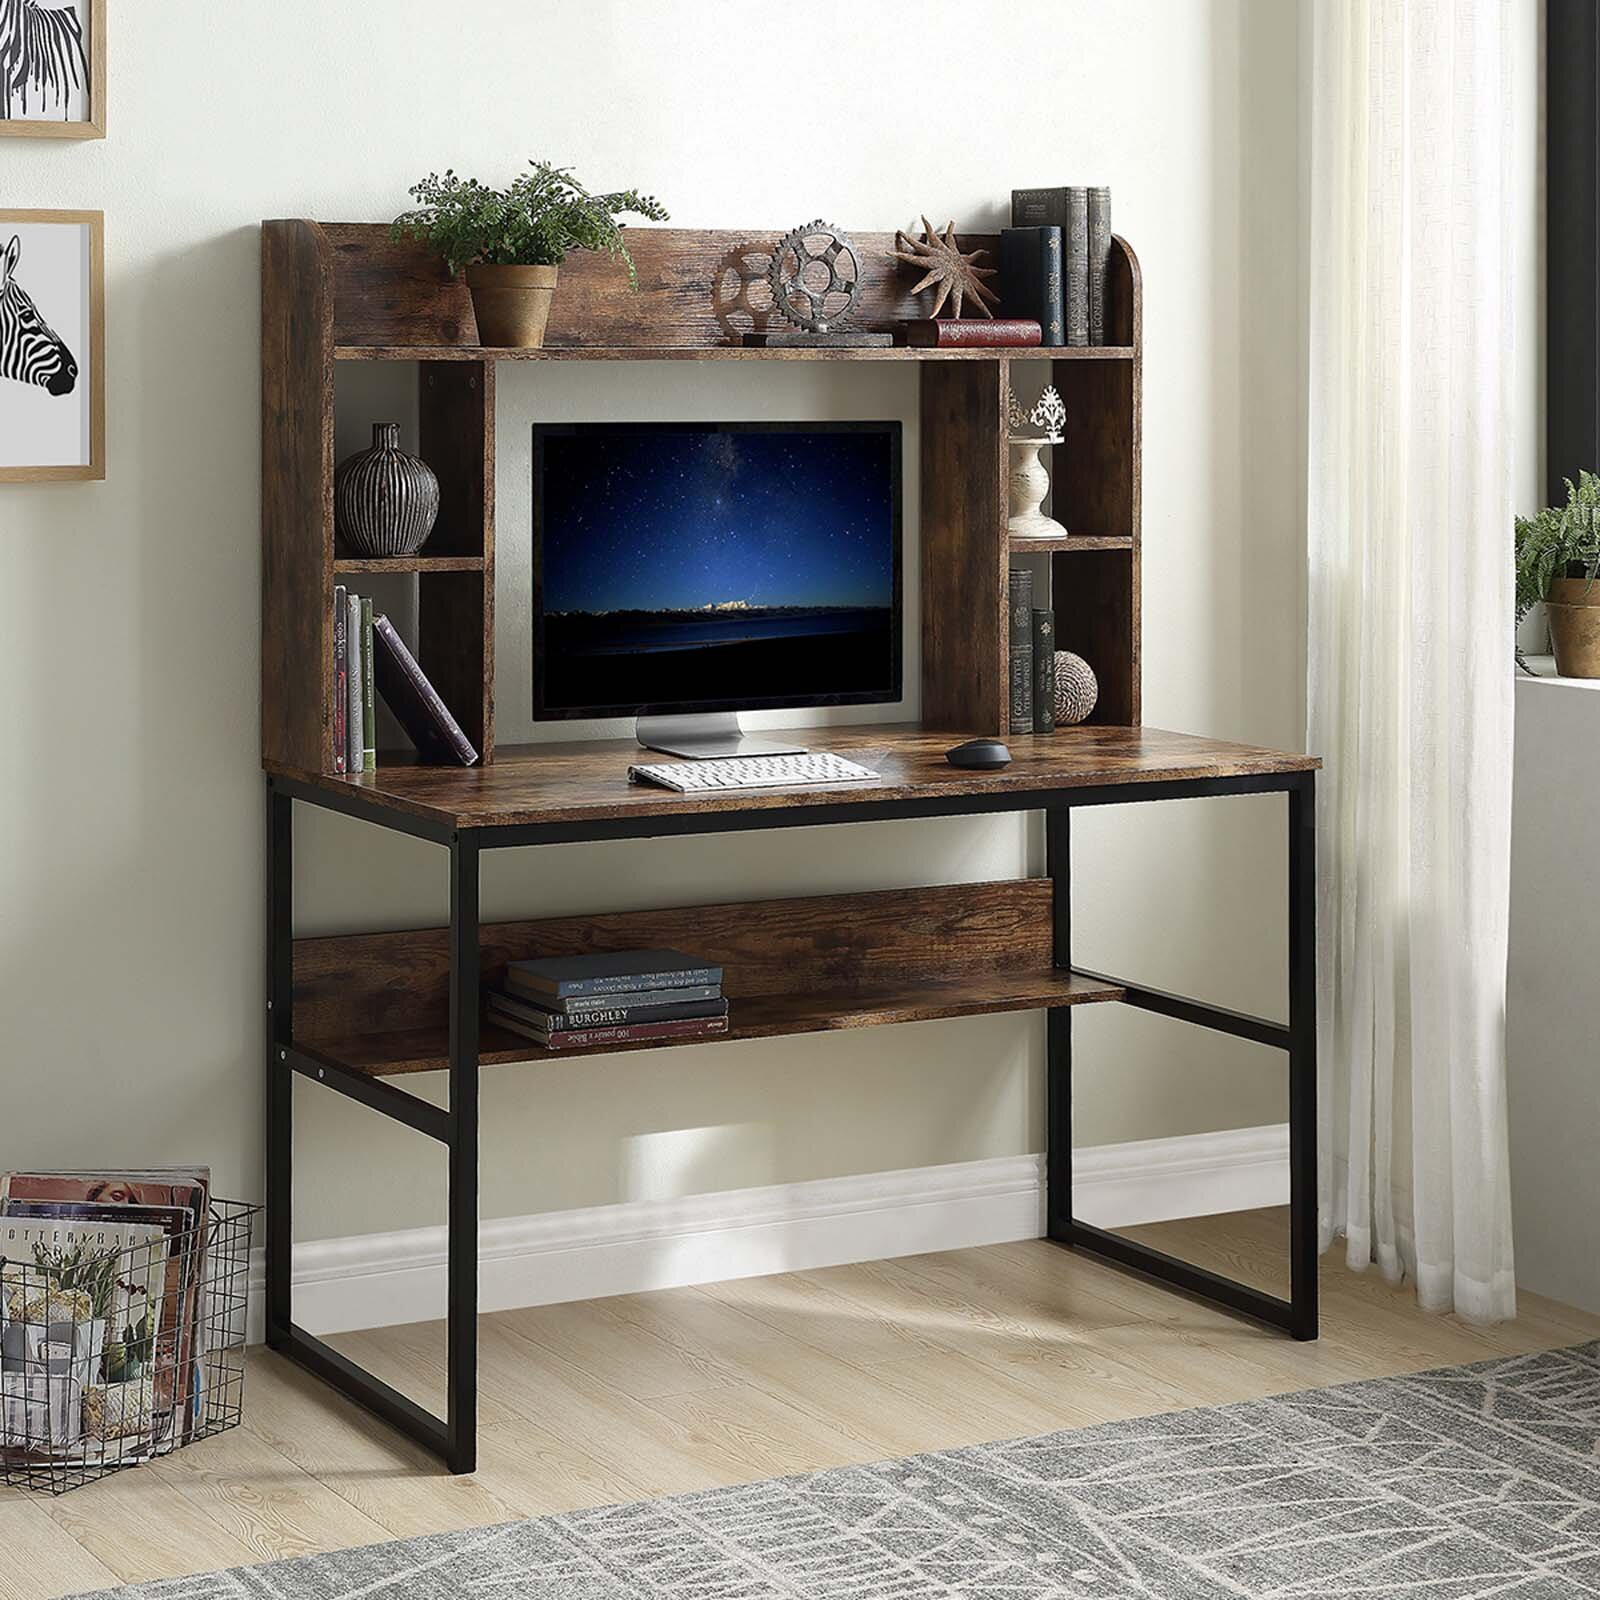 17 Stories Home Office Computer Desk With Hutch 47 Inch Rustic Office Desk And Modern Writing Desk With Storage Shelves Vintage And Black Legs Wayfair